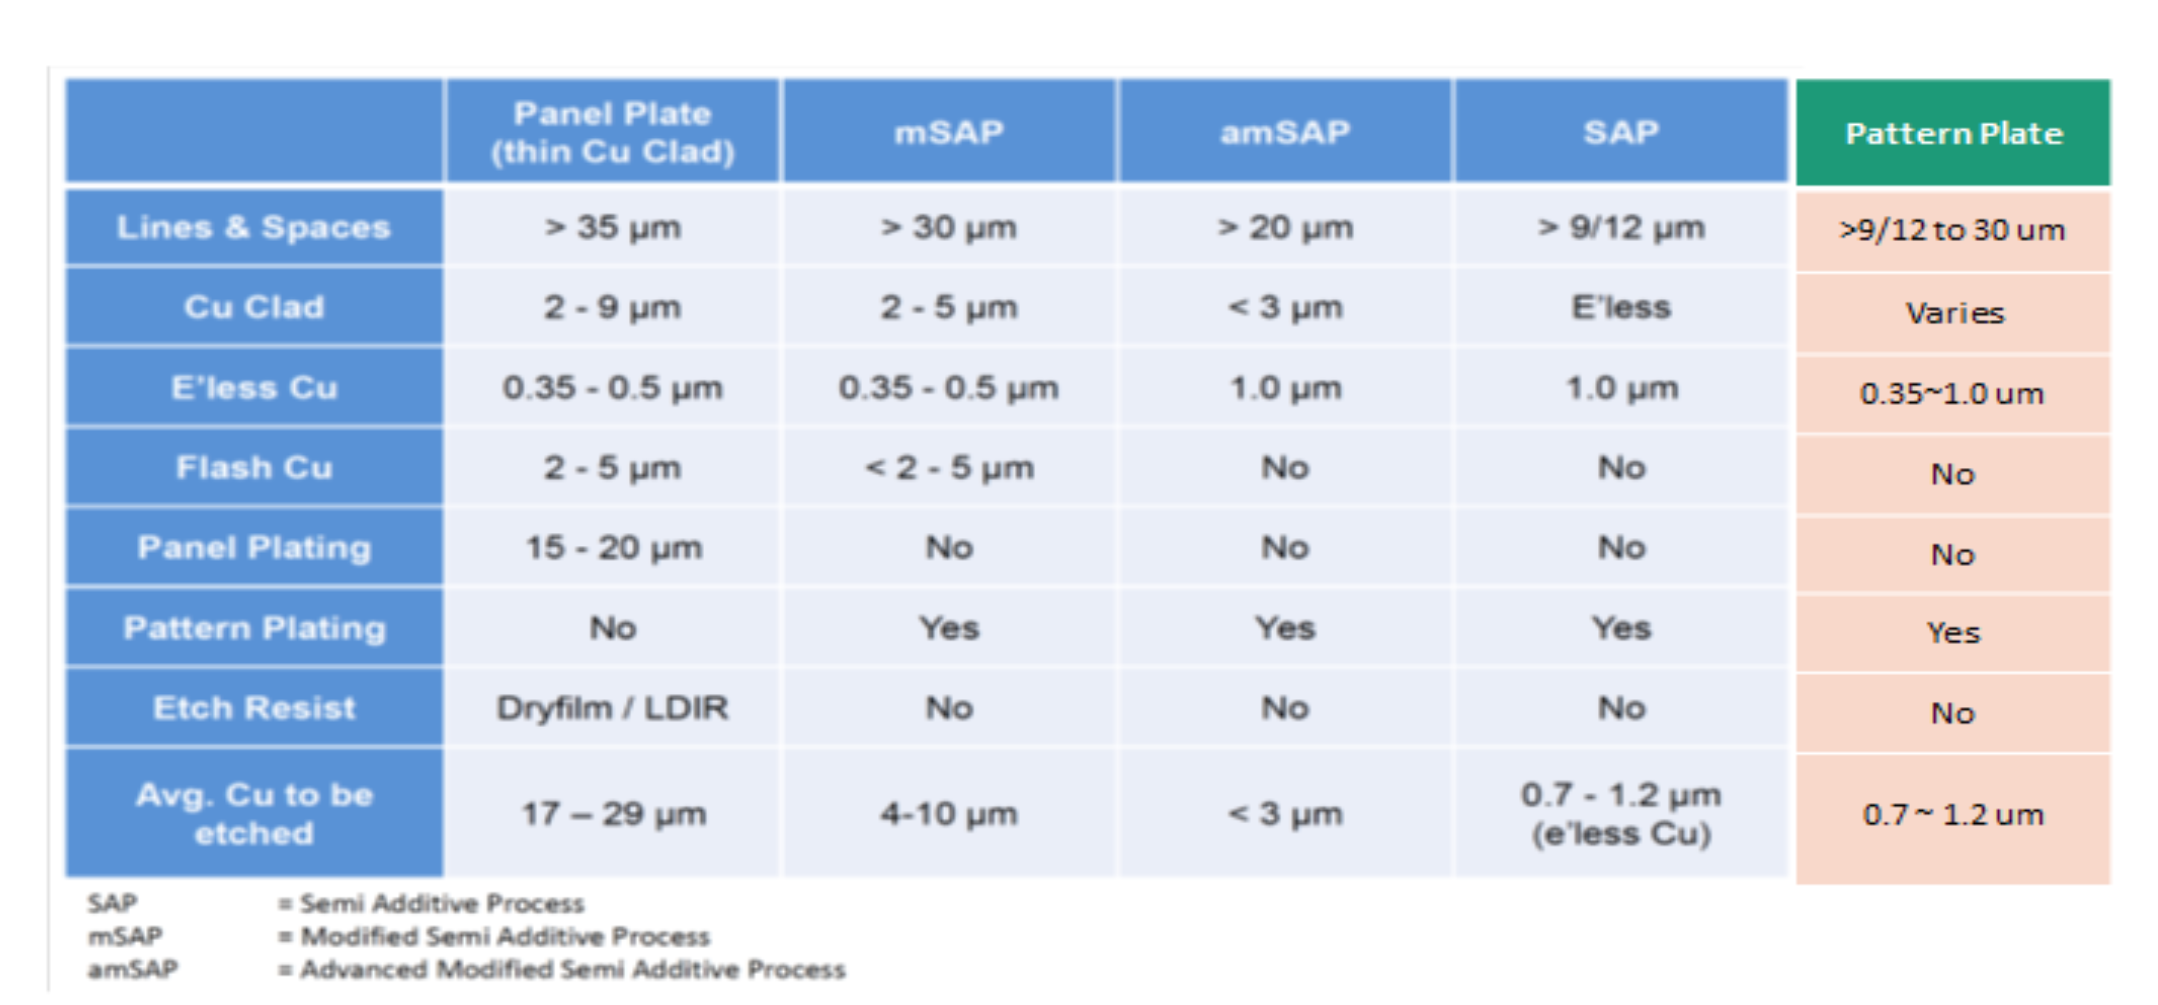 chart of 5 plating processes